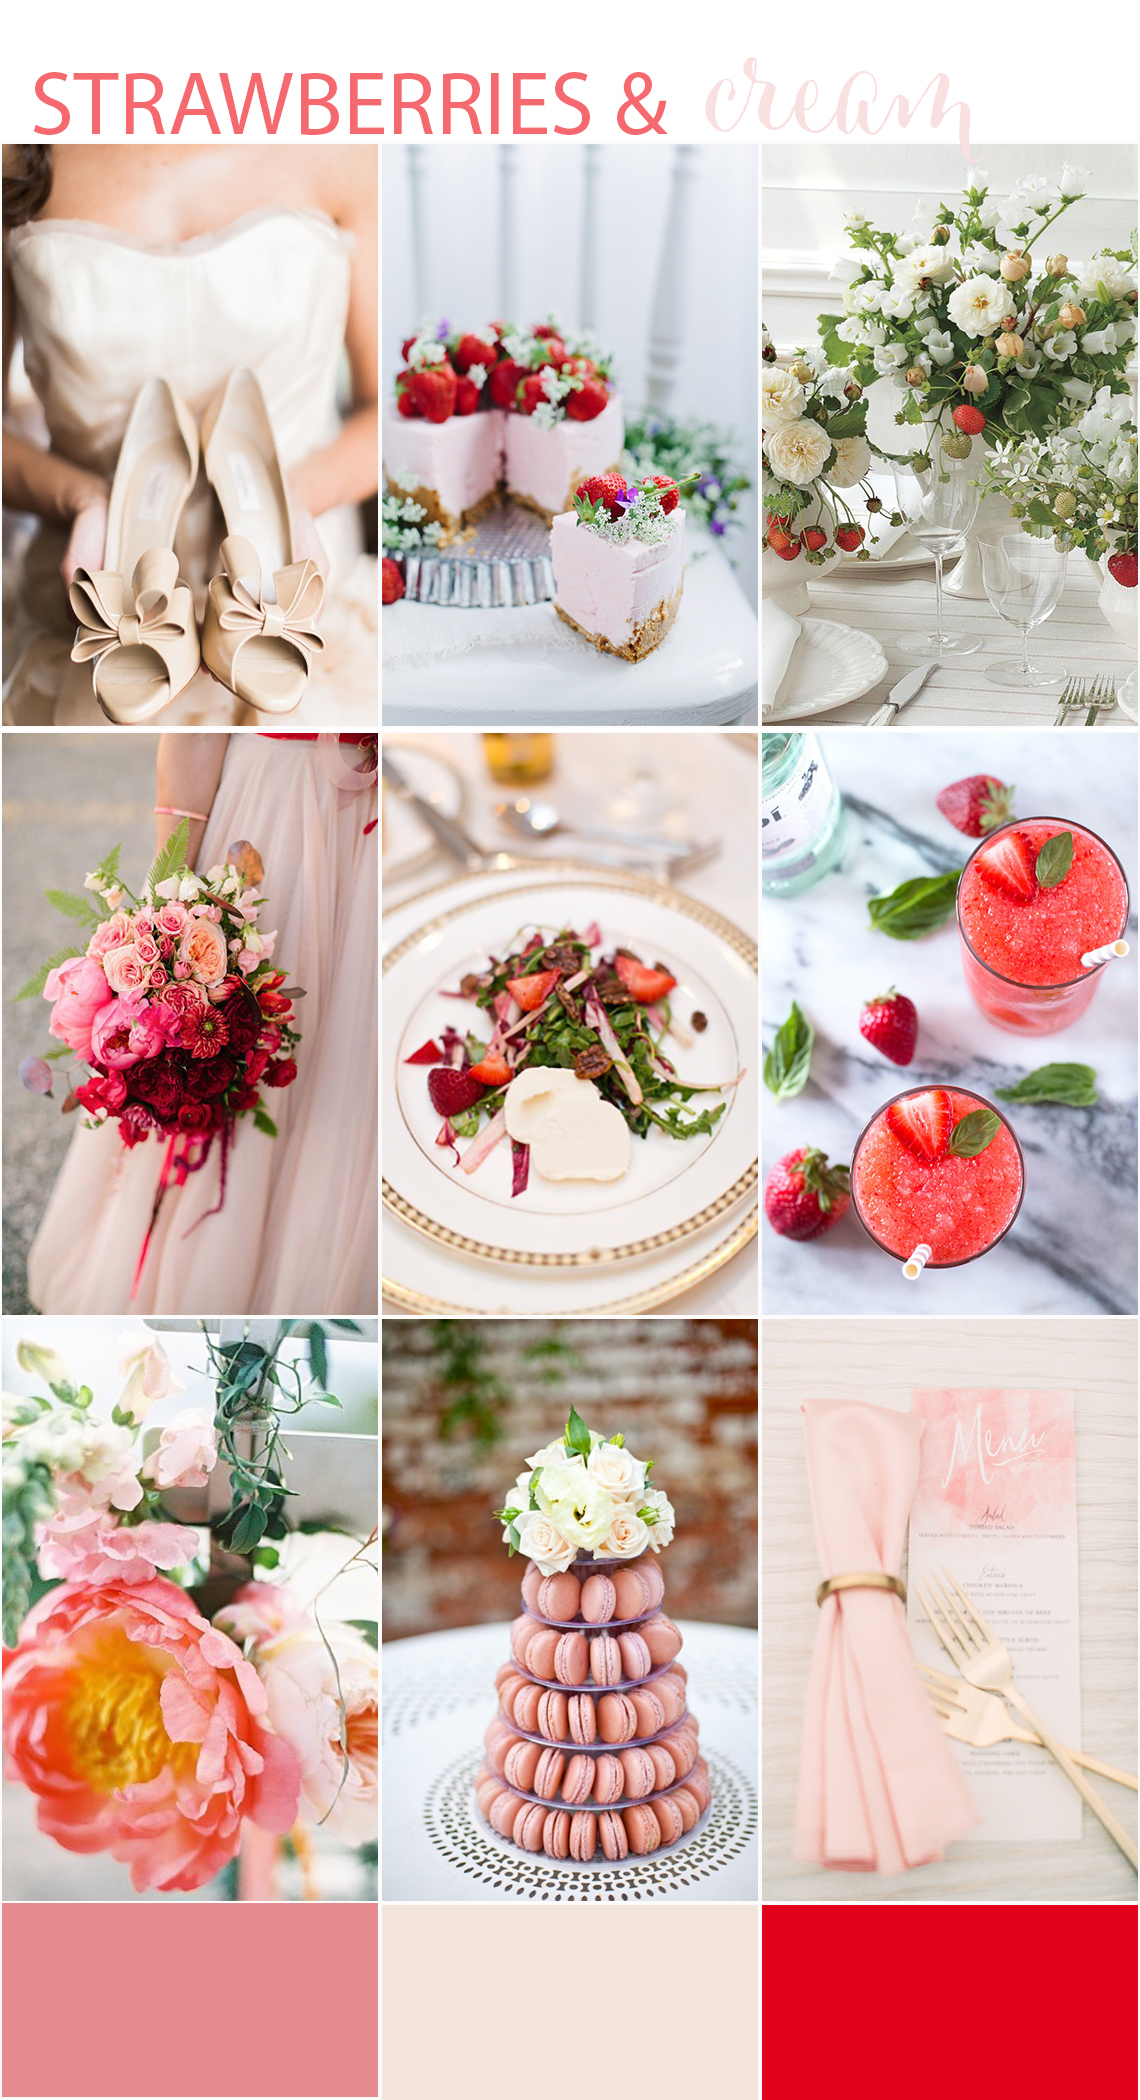 bloved-wedding-blog-stawberry-red-wedding-inspiration